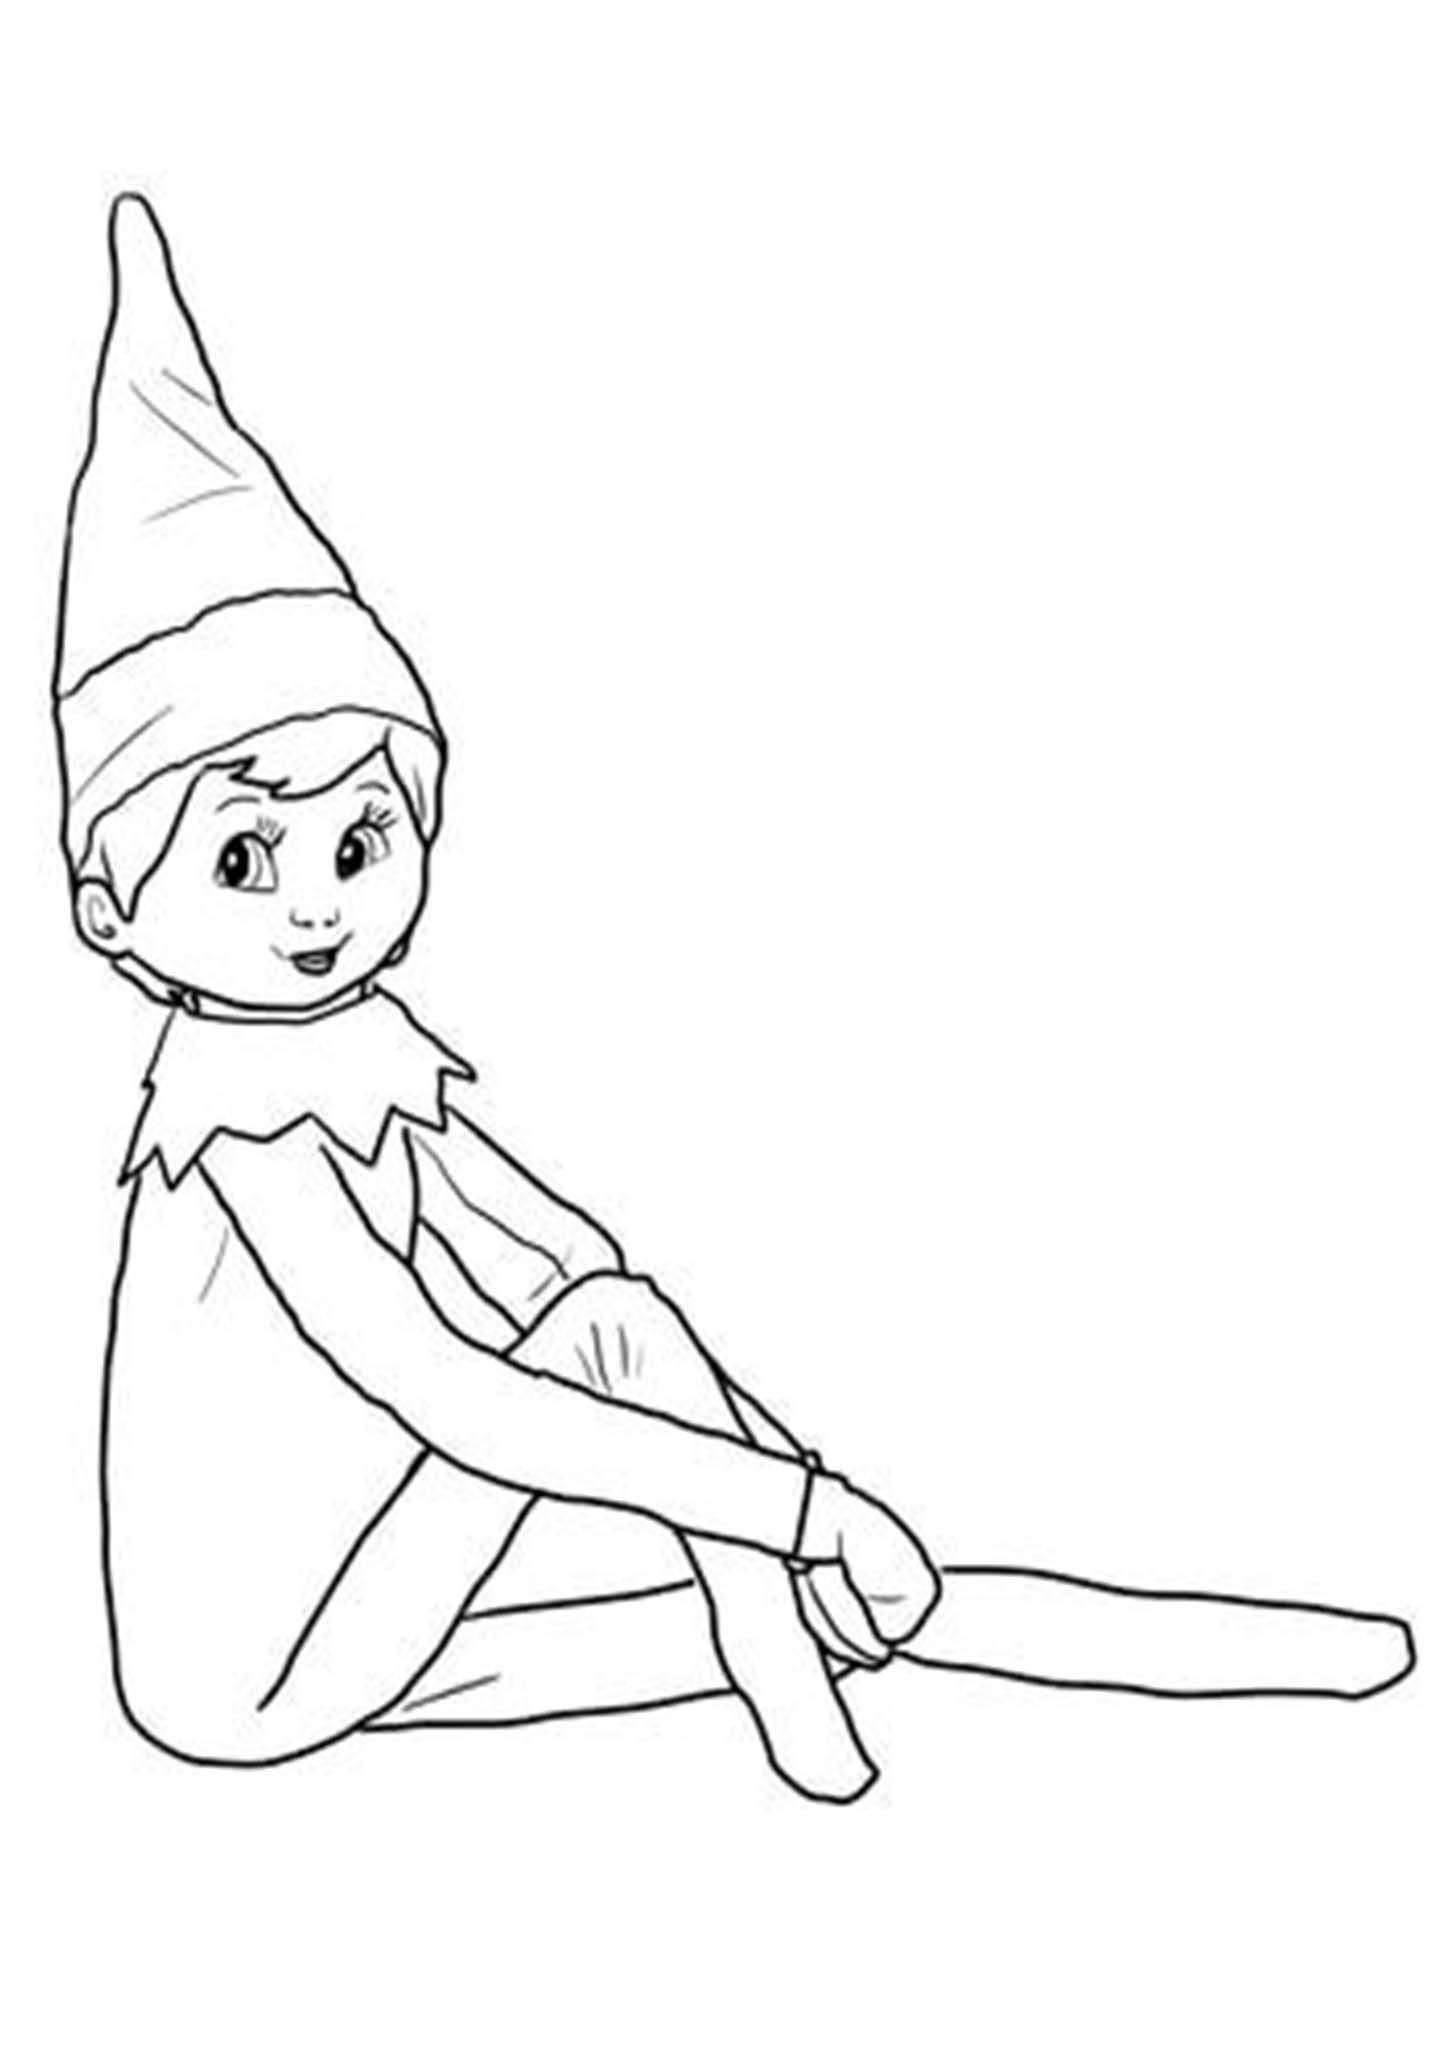 Free Printable Elf On The Shelf Coloring Pages Girl Elf Christmas Elf Christmas Coloring Pages